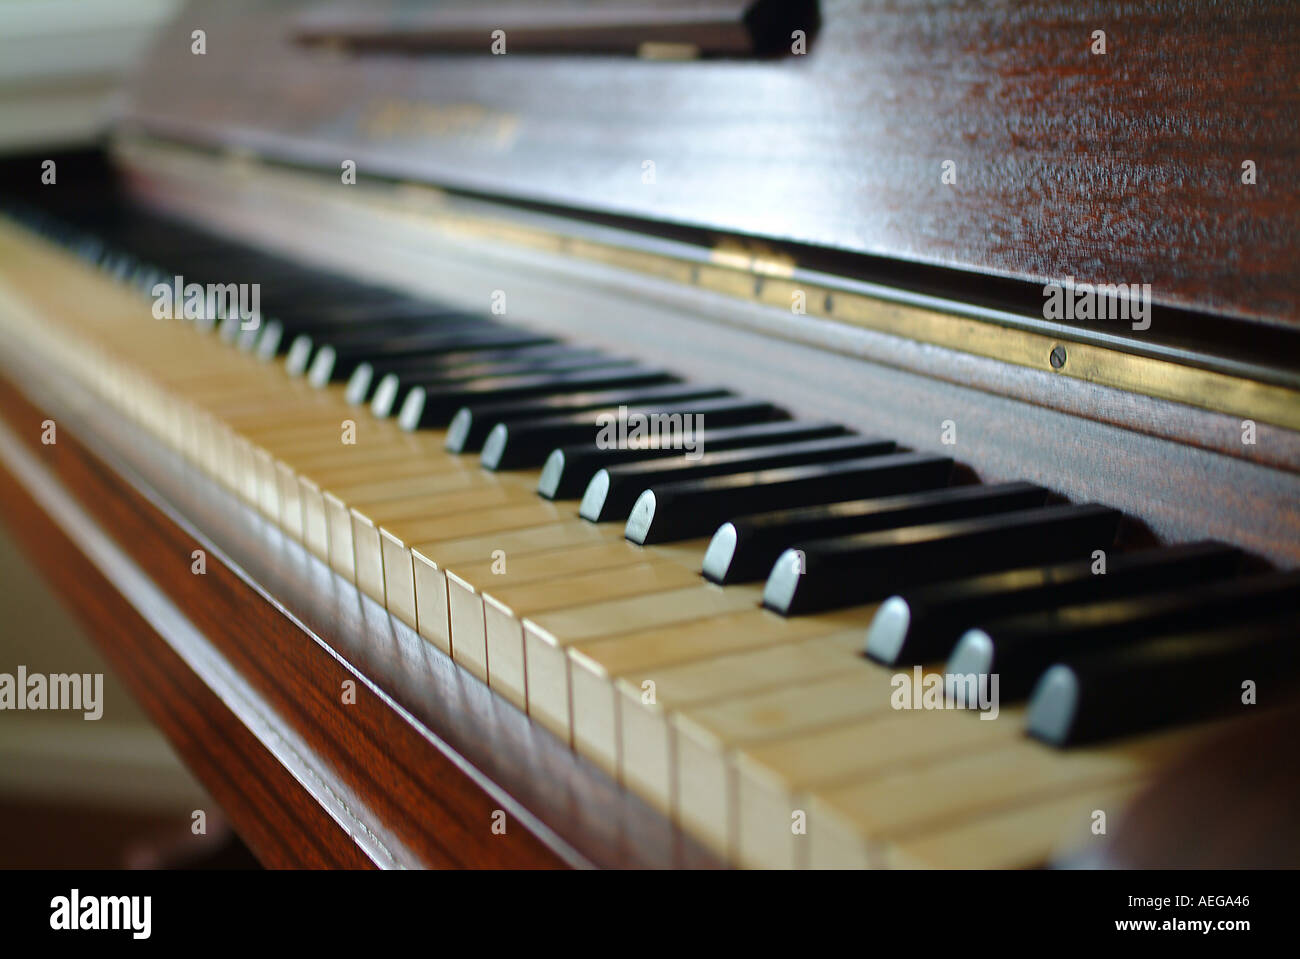 Read full profile growing up, if you can recall the taste of the wild berries in your home or the smell of your mom's stew, bouncing on the stove. Sweet Home Music Piano Keyboard Black White Wood Wooden Scale Notes Sounds Chords Big Heavy Abstract Concept Miscellaneous Music Stock Photo Alamy